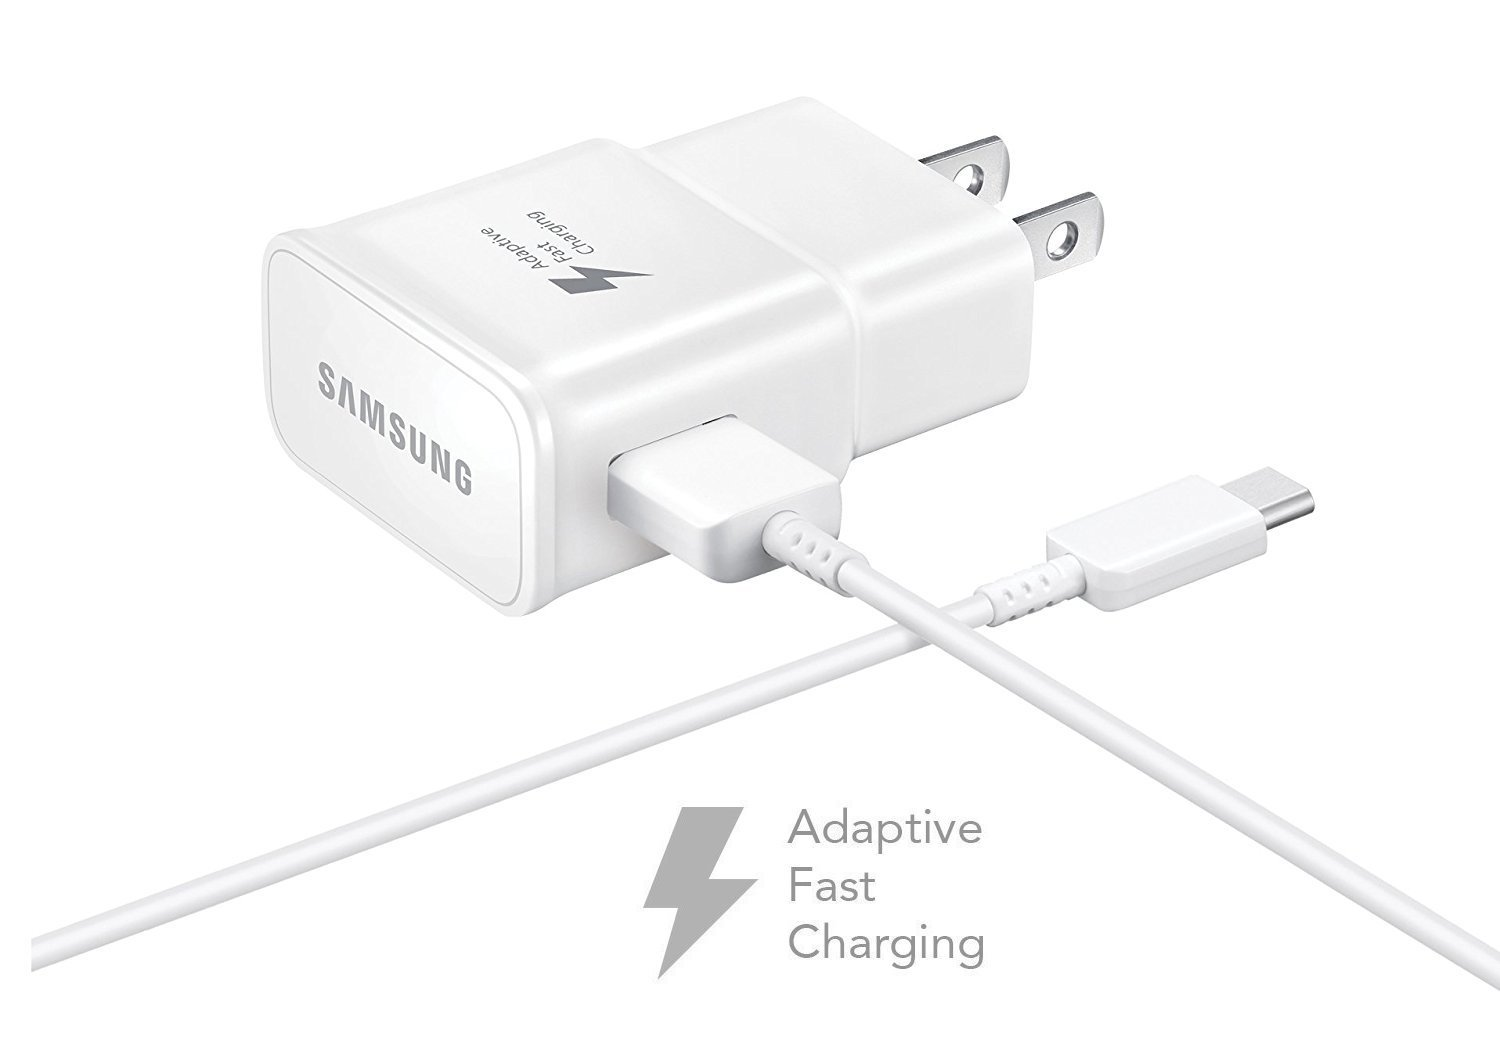 OEM Samsung Home Wall Charger for Galaxy S8/S8+ Note 8 - White EP-TA20JWE / EP-DN930CWE- Bulk Packaging